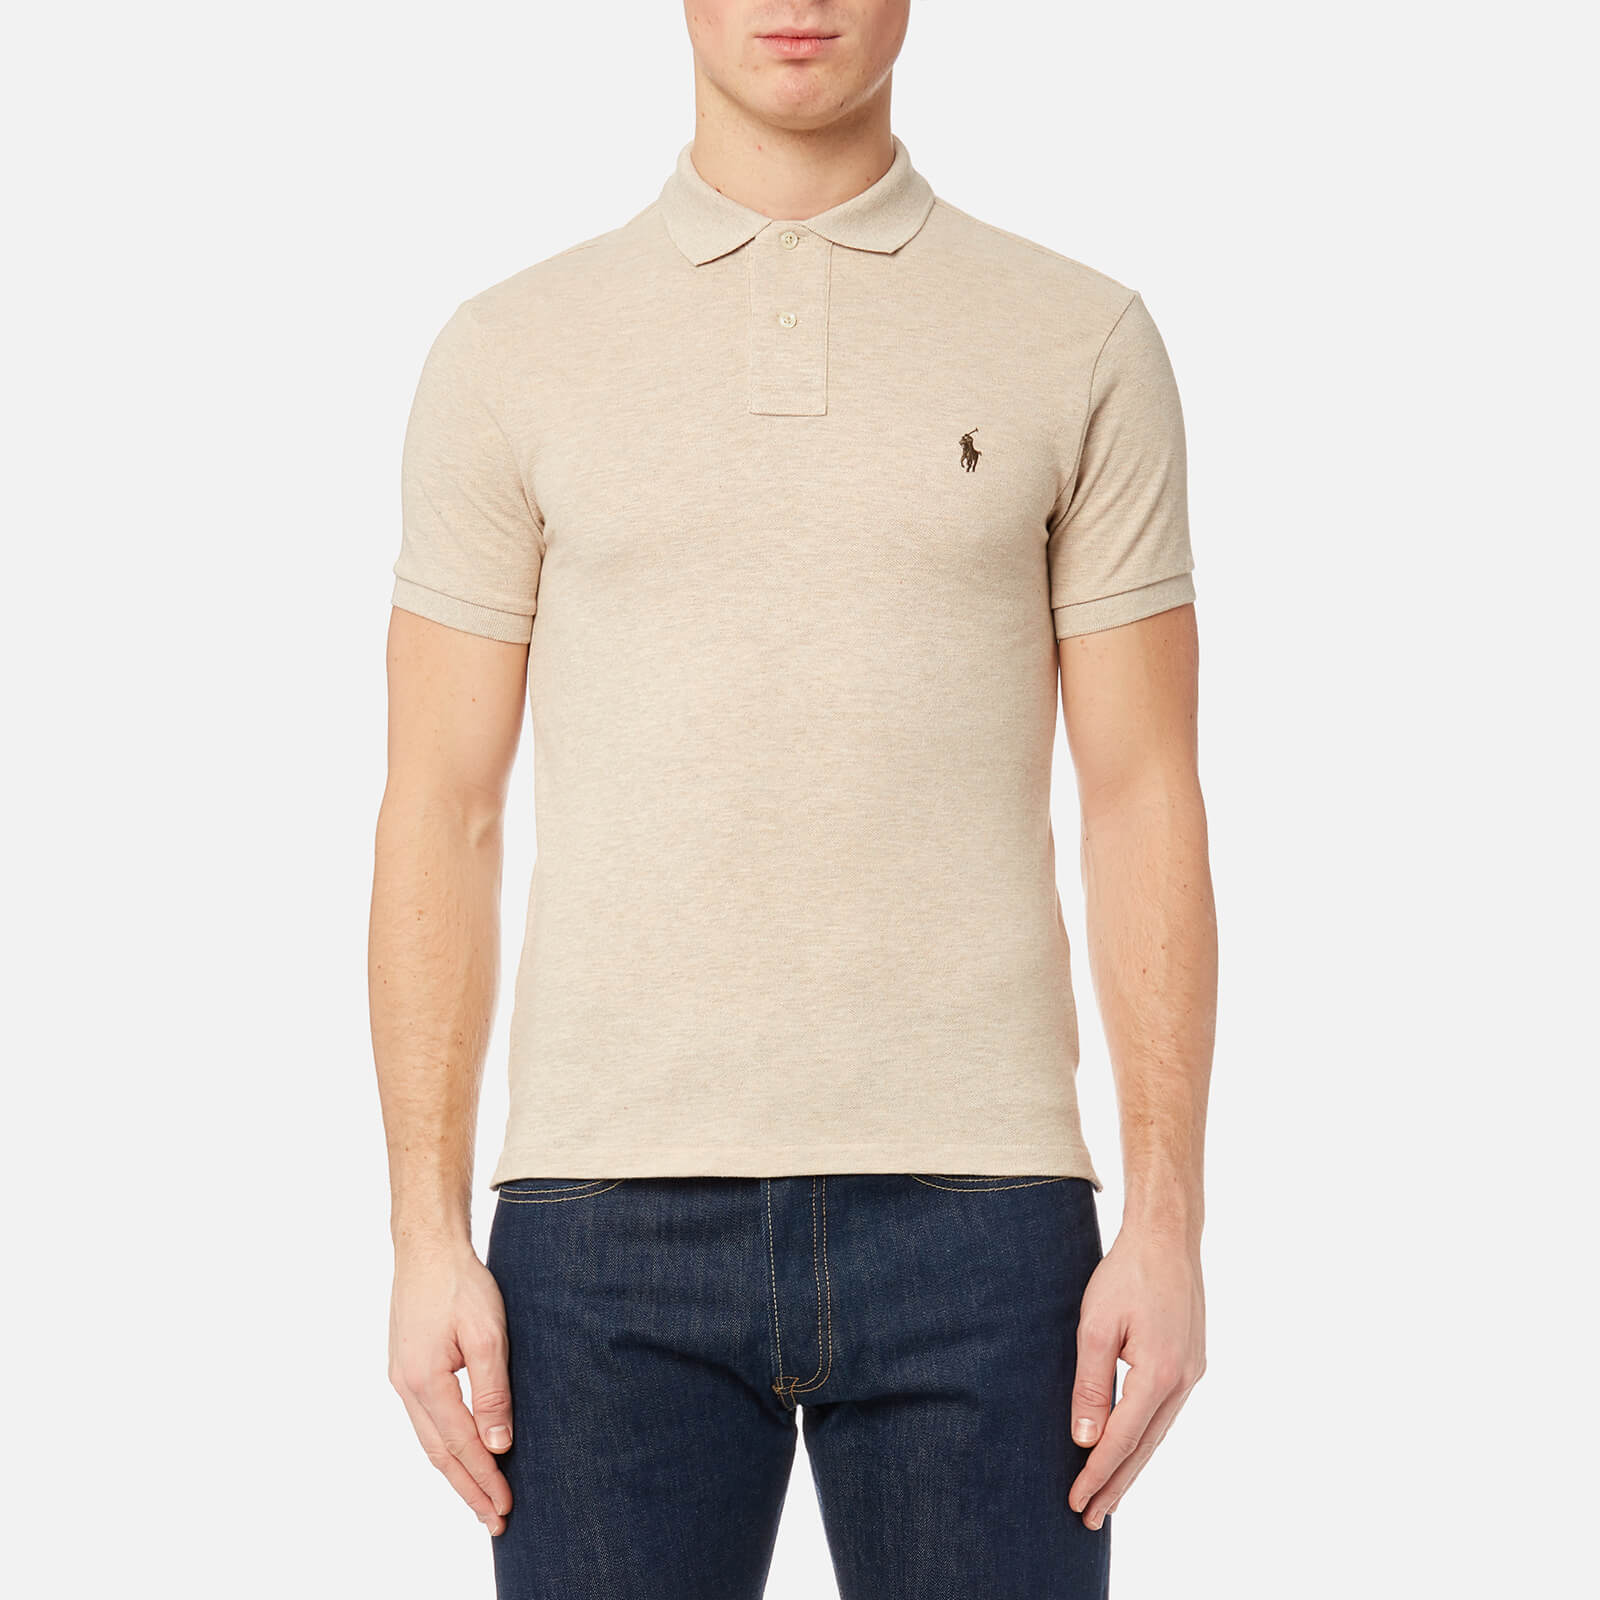 7dc5a675 Polo Ralph Lauren Men's Slim Fit Short Sleeve Polo Shirt - Expedition Dune  Heather - Free UK Delivery over £50